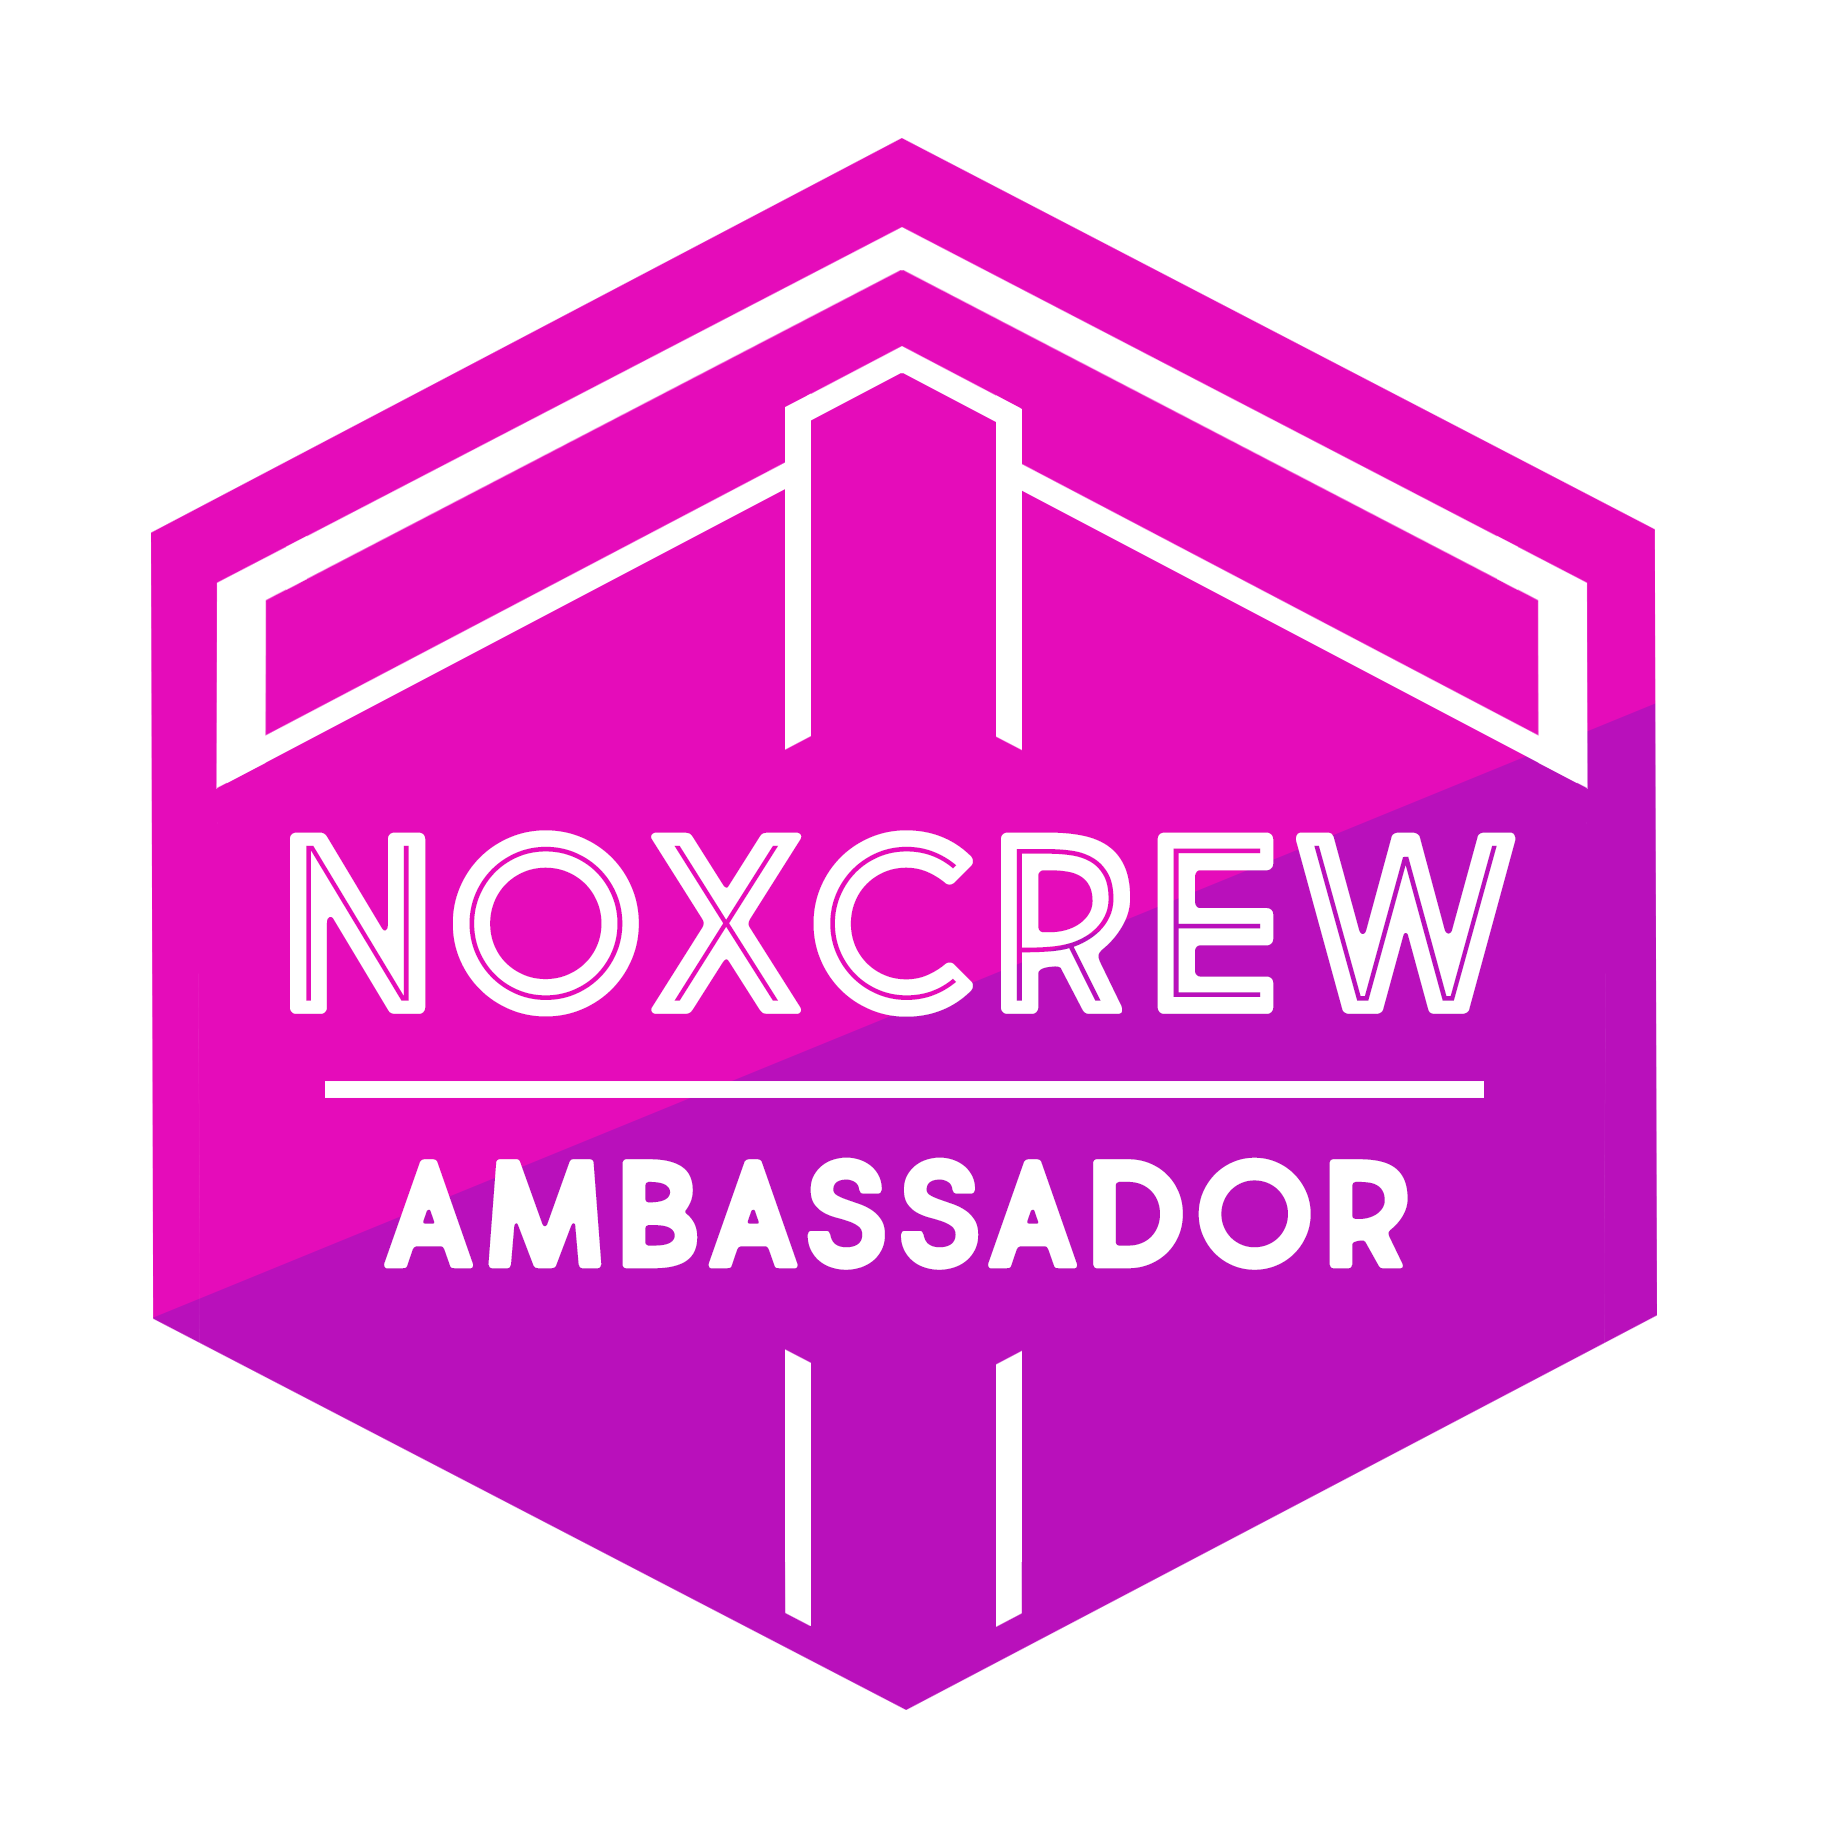 Noxcrew Ambassador Badge.png